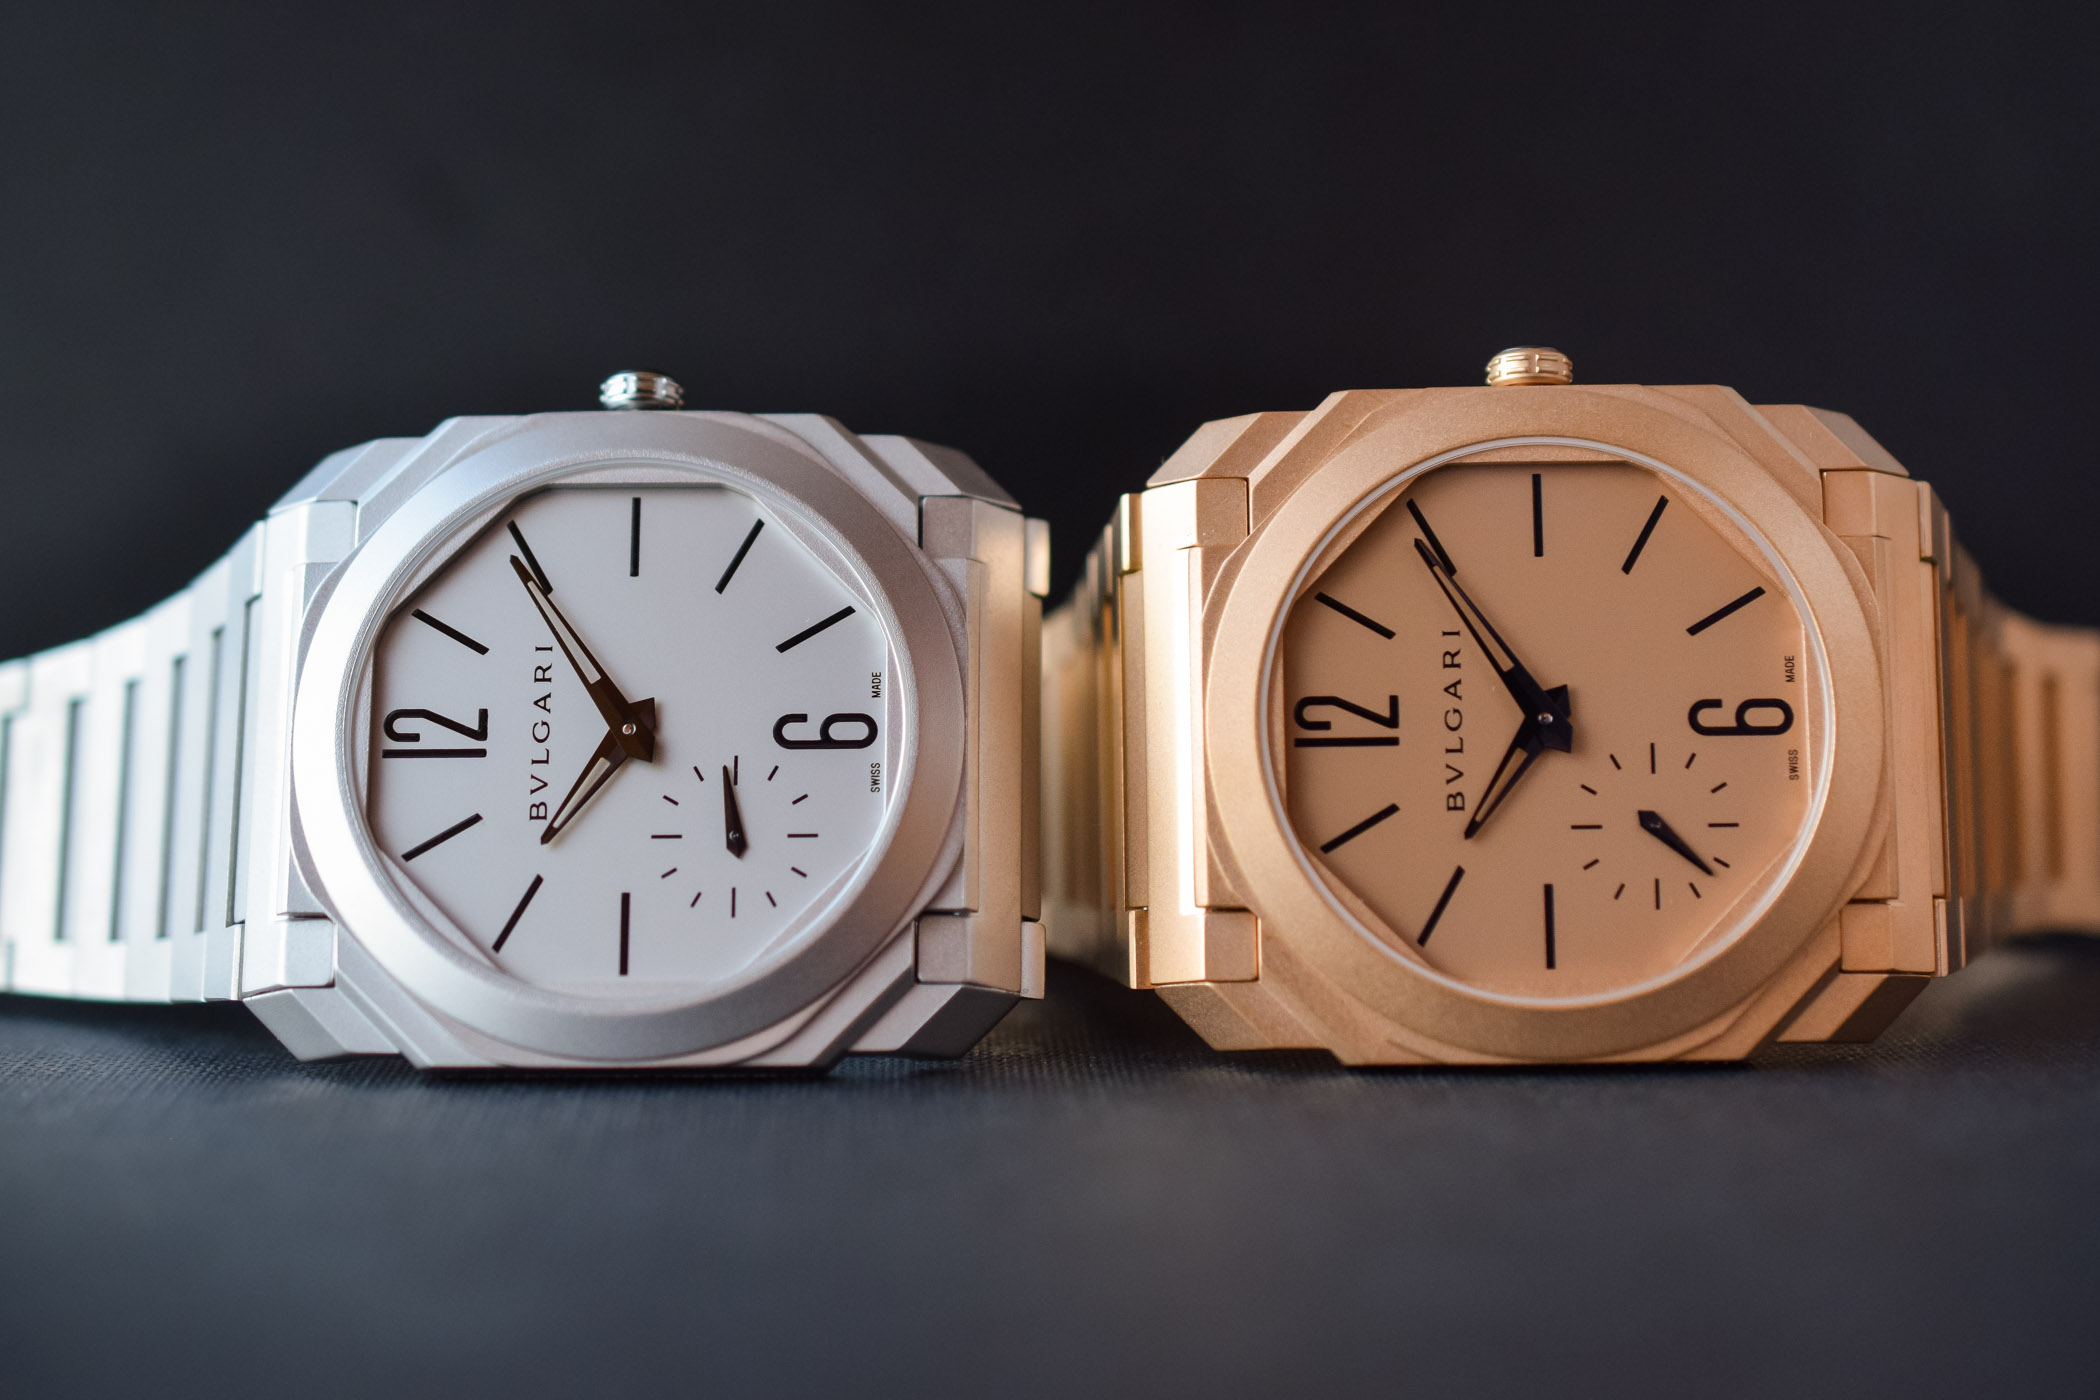 Bvlgari Octo Finissimo Automatic Sandblasted Trilogy of Metals